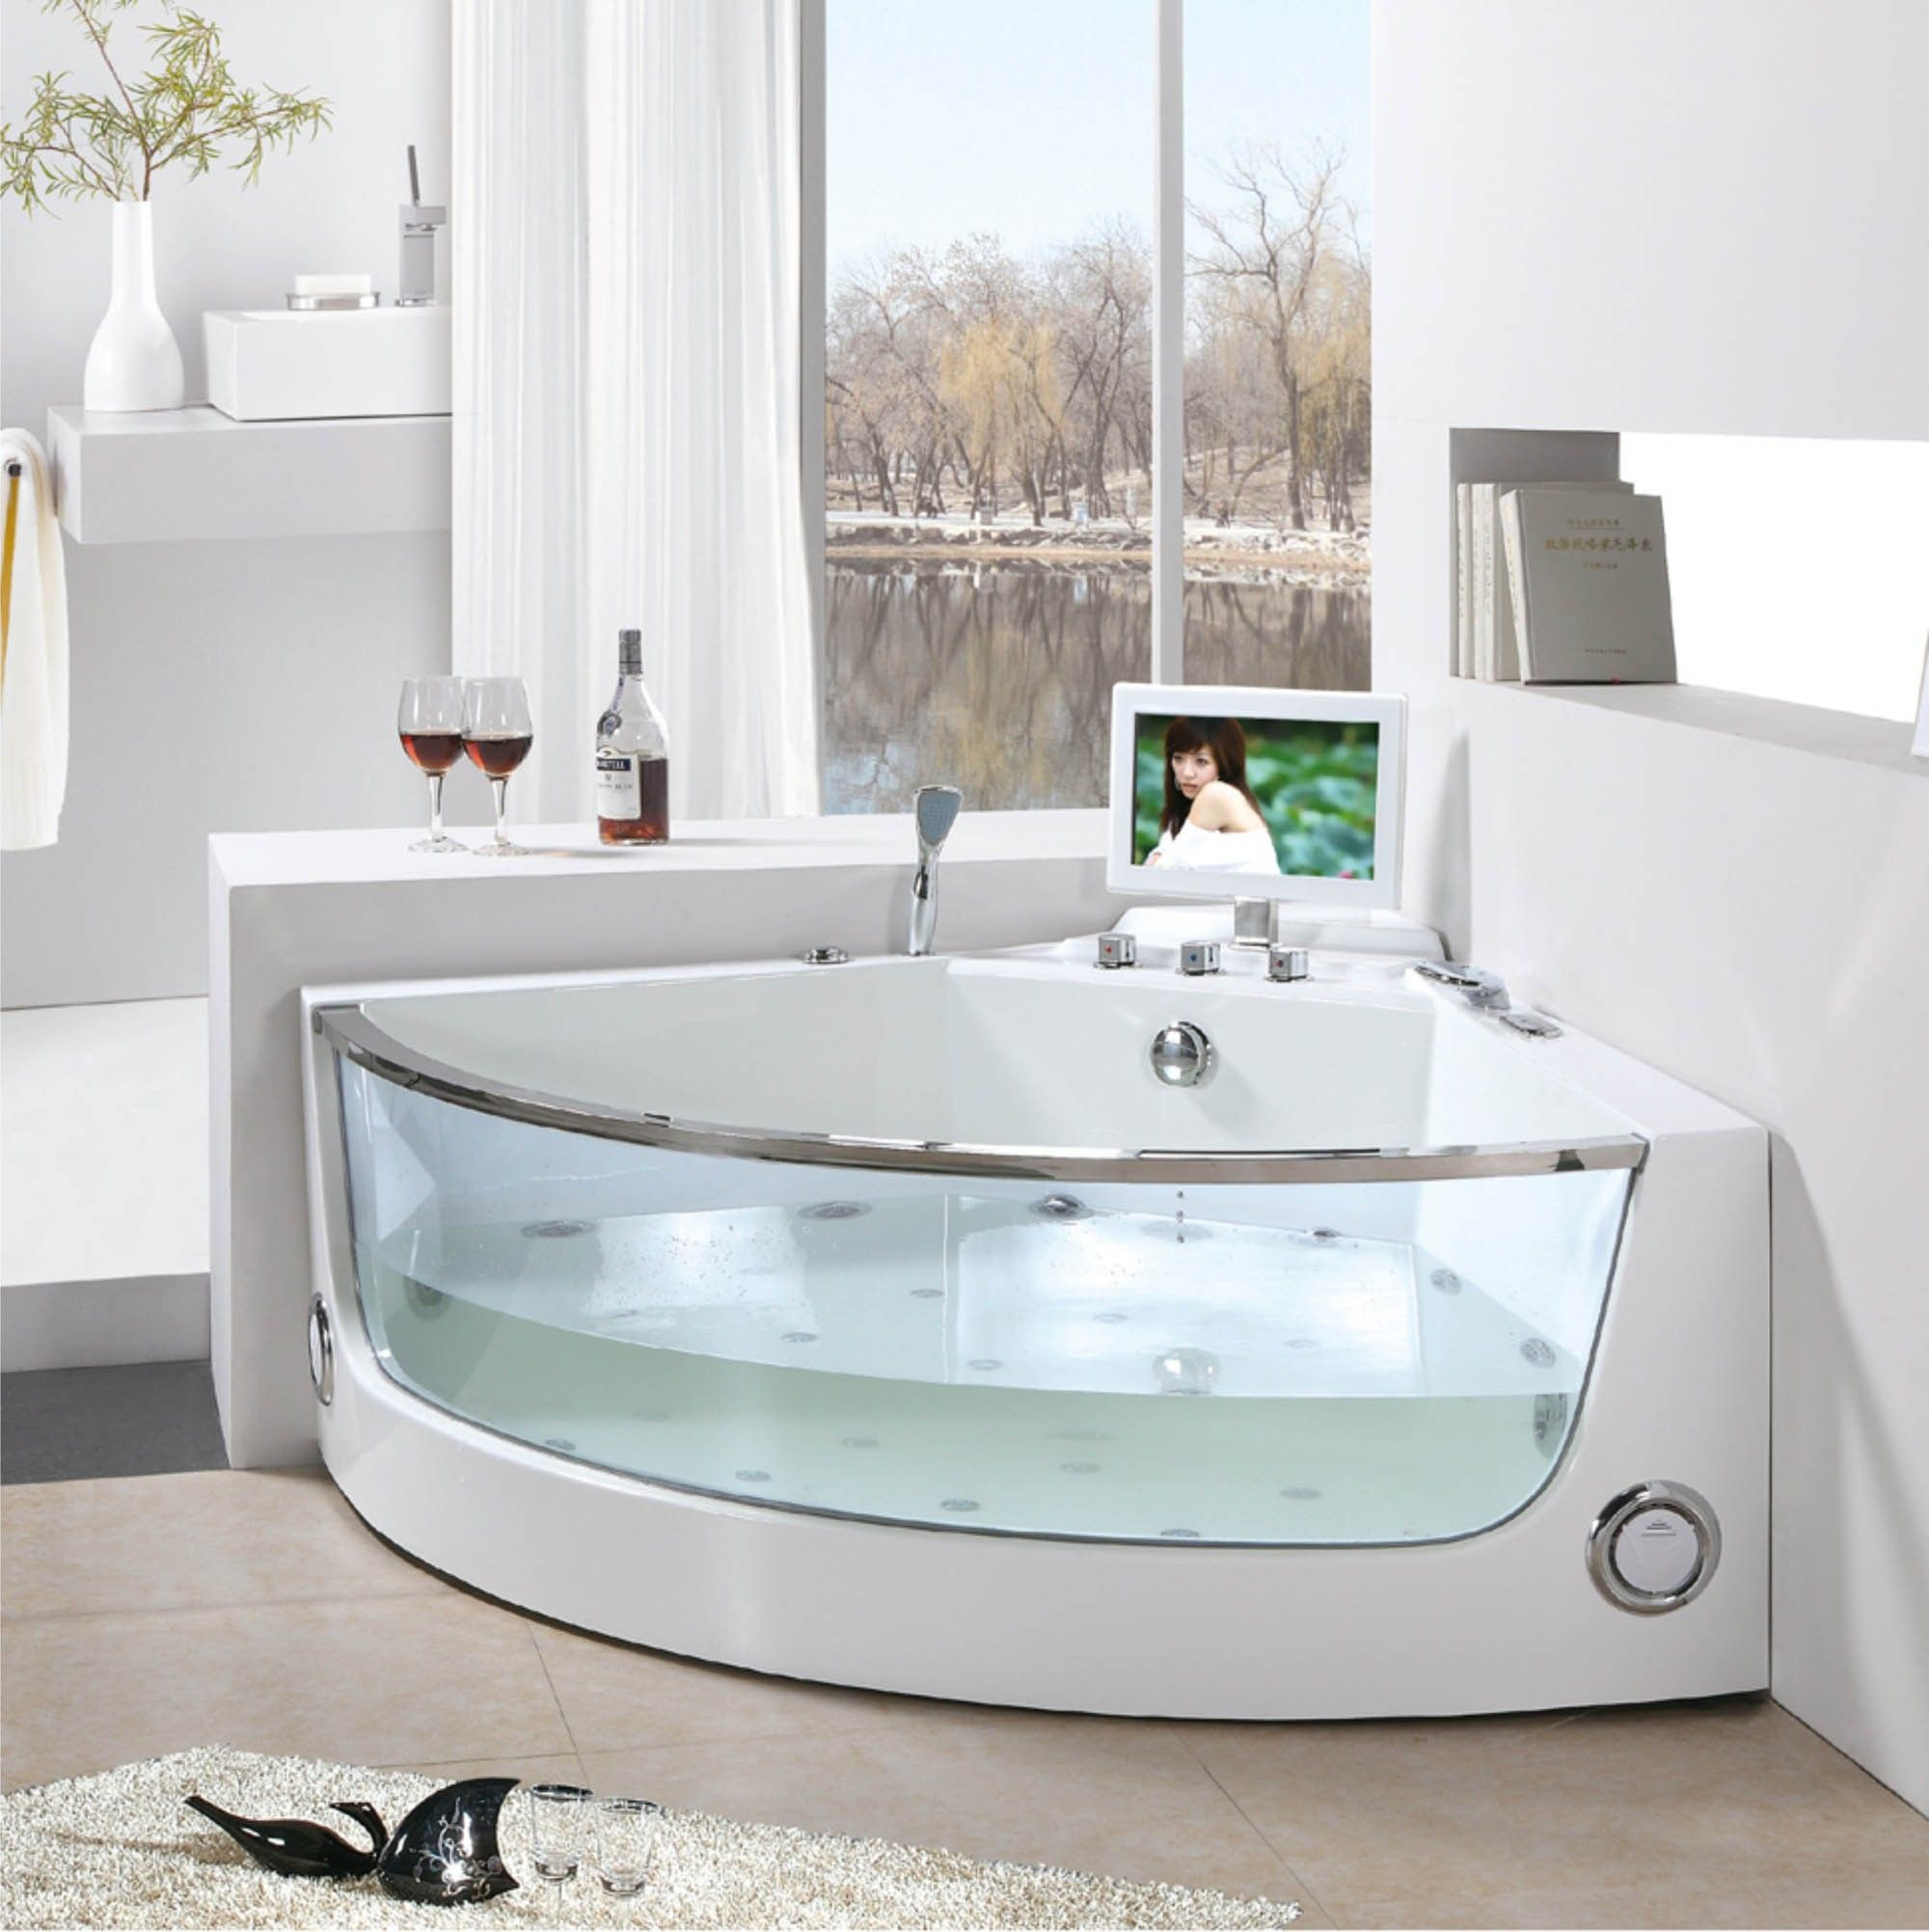 Breathtaking soaking tubs models and type ideas for bathroom tubs furniture new bathroom styles Bathroom remodel with walk in tub